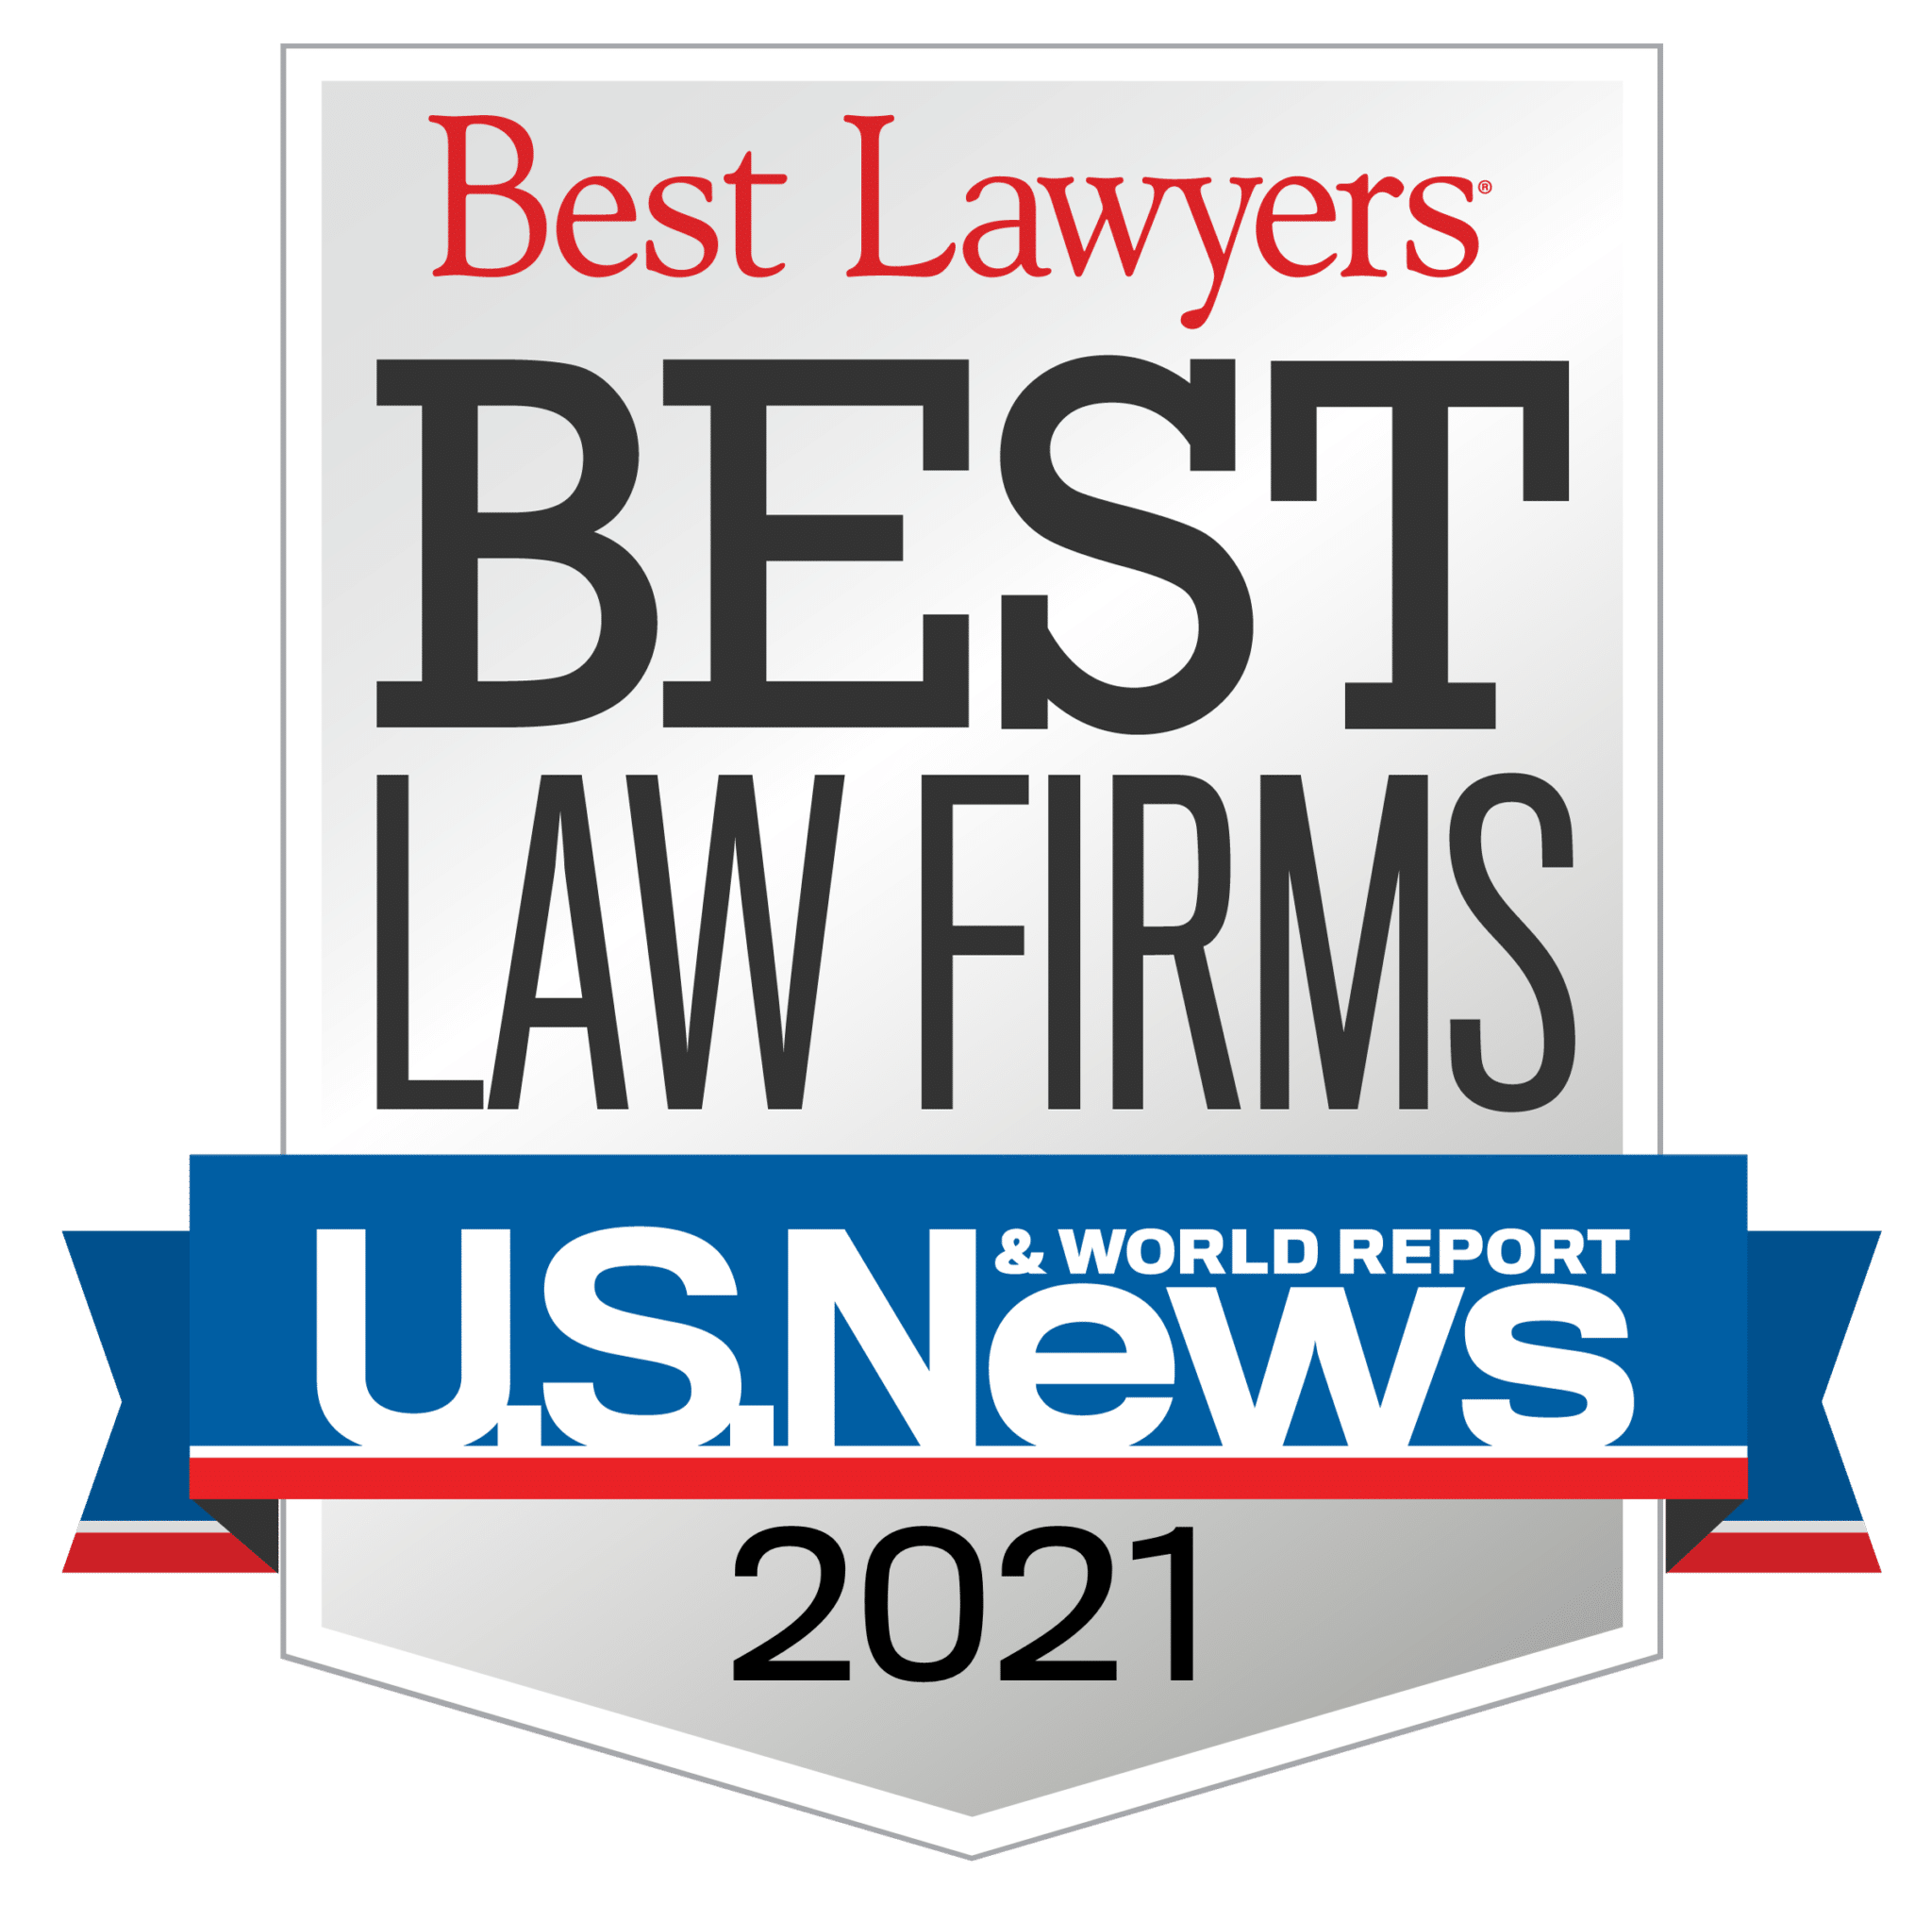 U.S. News & Wrold Reports Best Law Firms